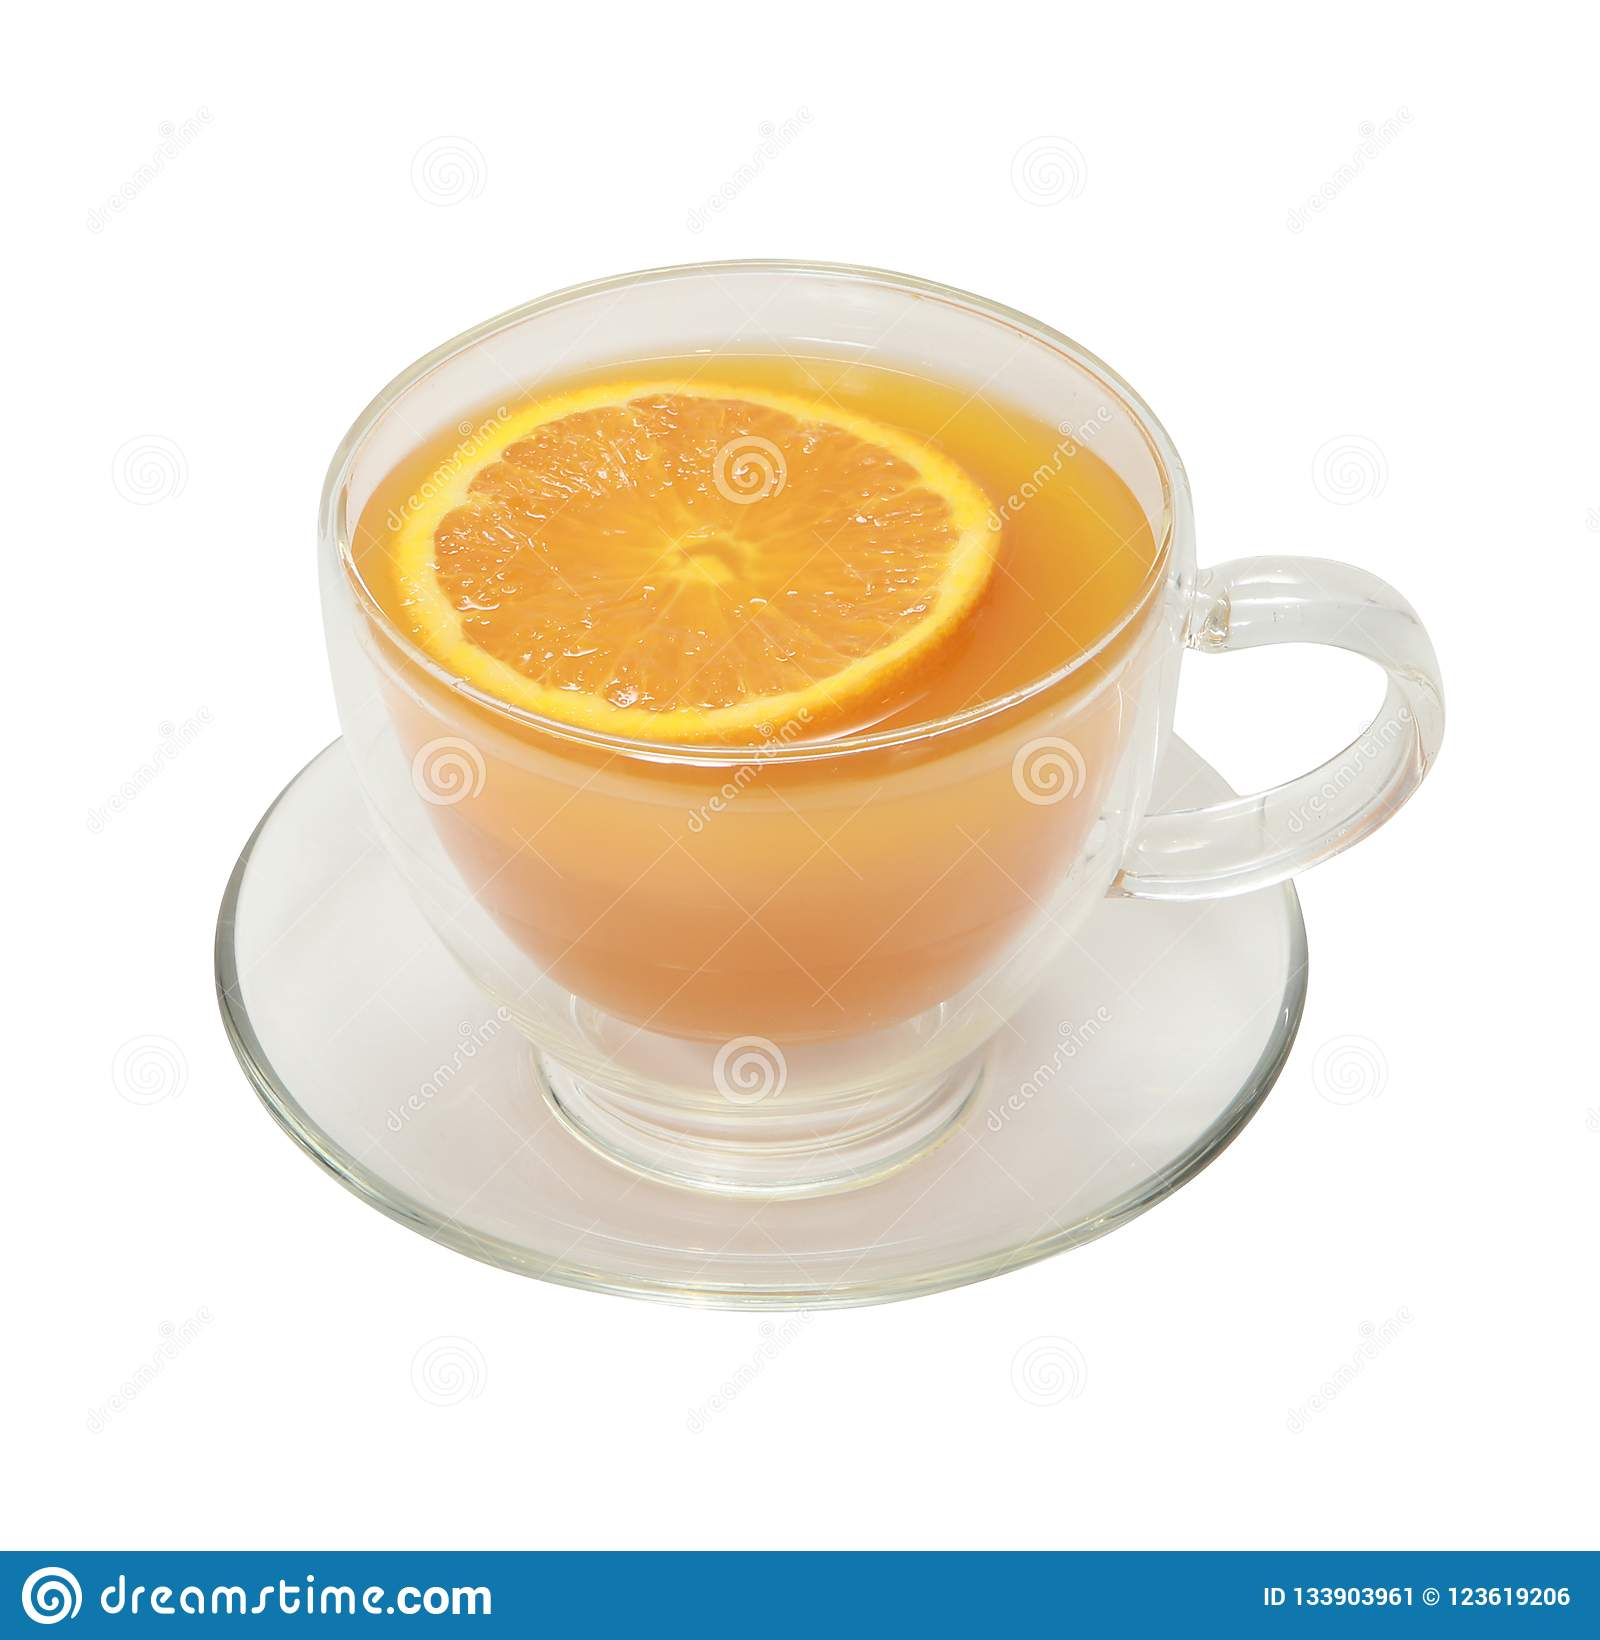 Fruit tea,the beverage so prepared, served hot or iced.